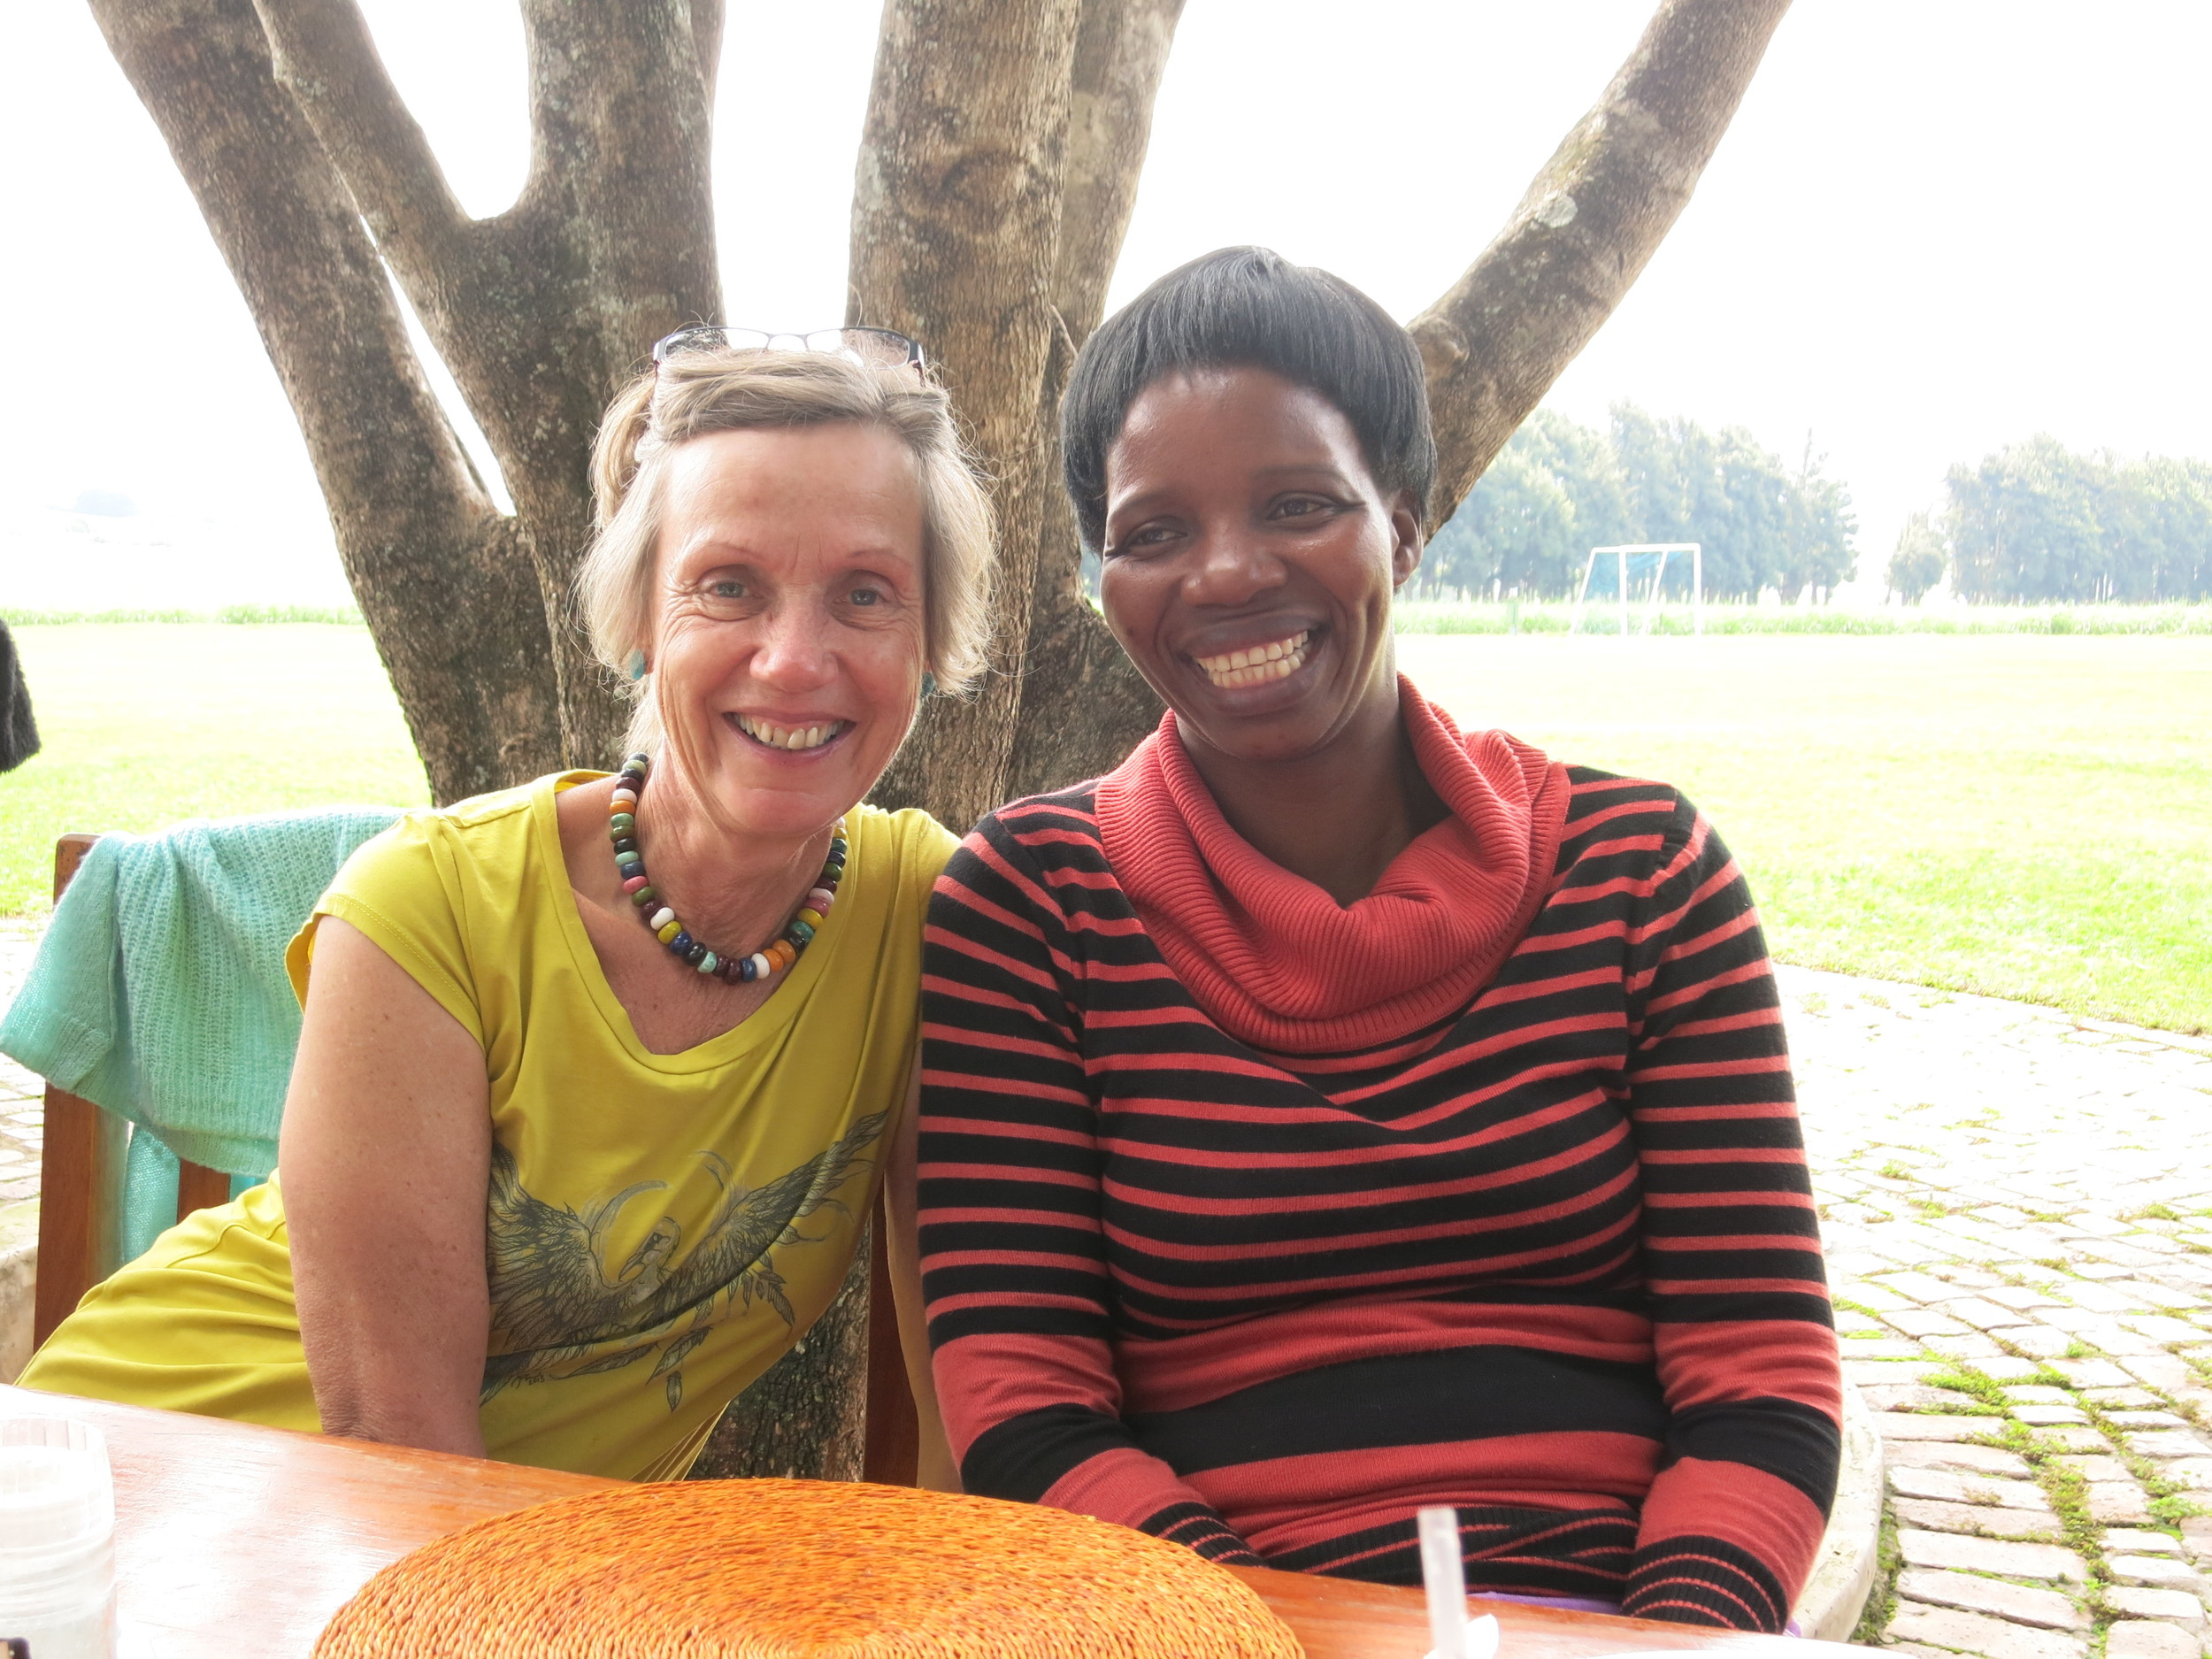 Els and Busi have been working together since 1991.